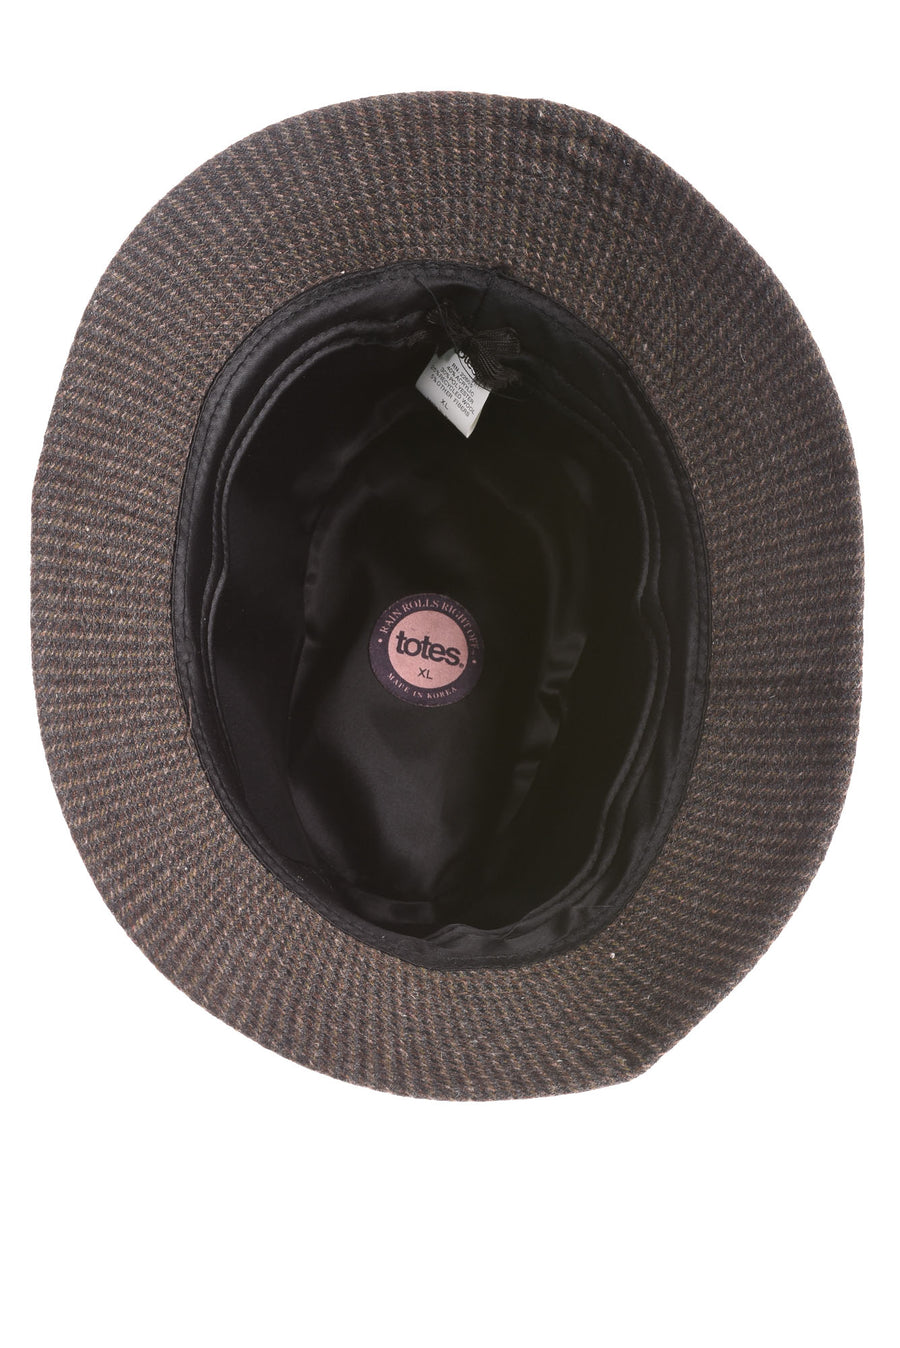 Men's Hat By Totes